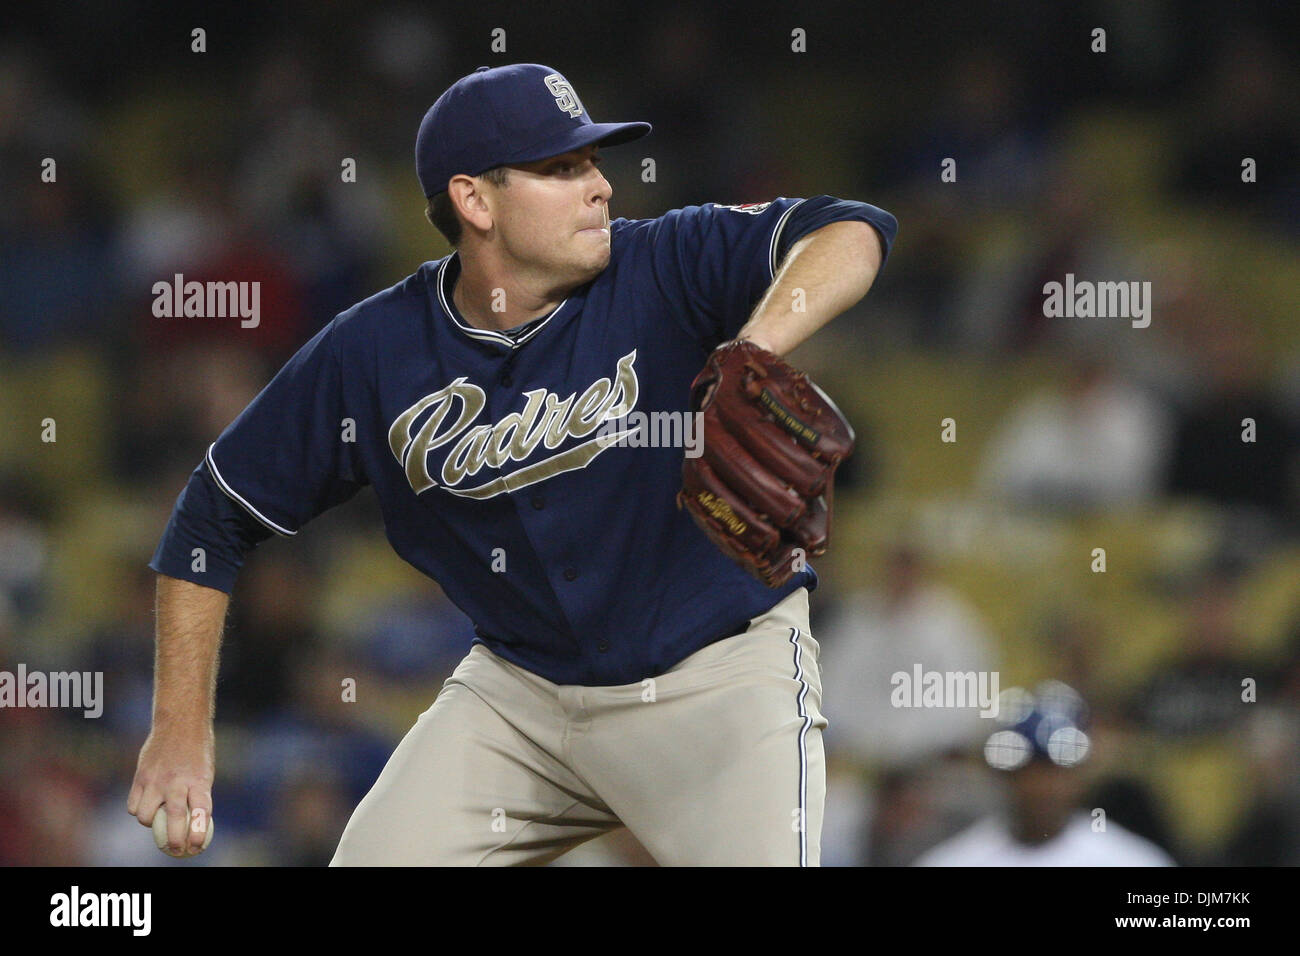 Sept. 22, 2010 - Los Angeles, California, United States of America - San Diego Padres pitcher (#46) TIM STAUFFER pitches during the Padres vs. Dodgers game at Dodgers Stadium. The Padres went on to defeat the Dodgers with a final score of 3-1. (Credit Image: © Brandon Parry/Southcreek Global/ZUMApress.com) - Stock Image